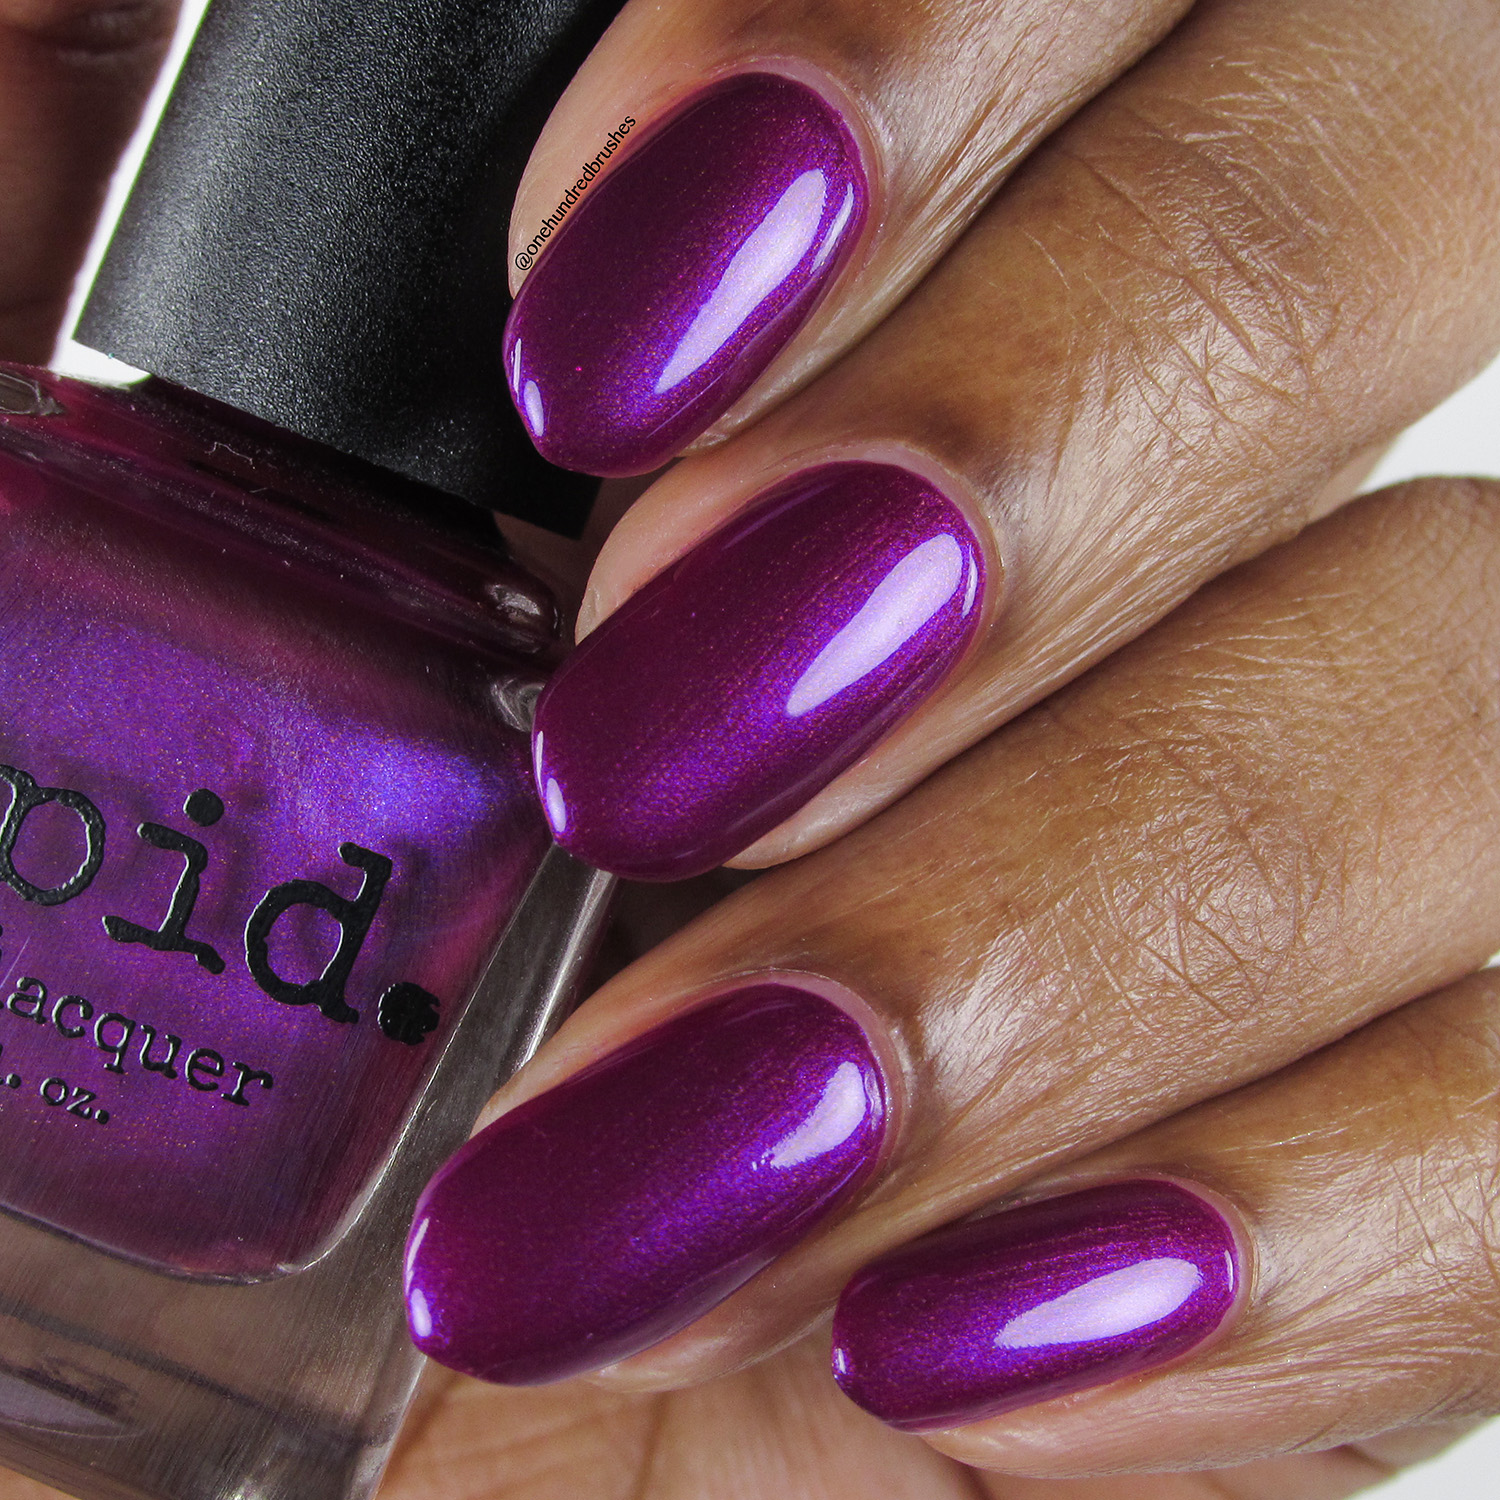 Concord - bottle - Vapid Lacquer - April 2018 - Spring release - berry purple - purple shimmer